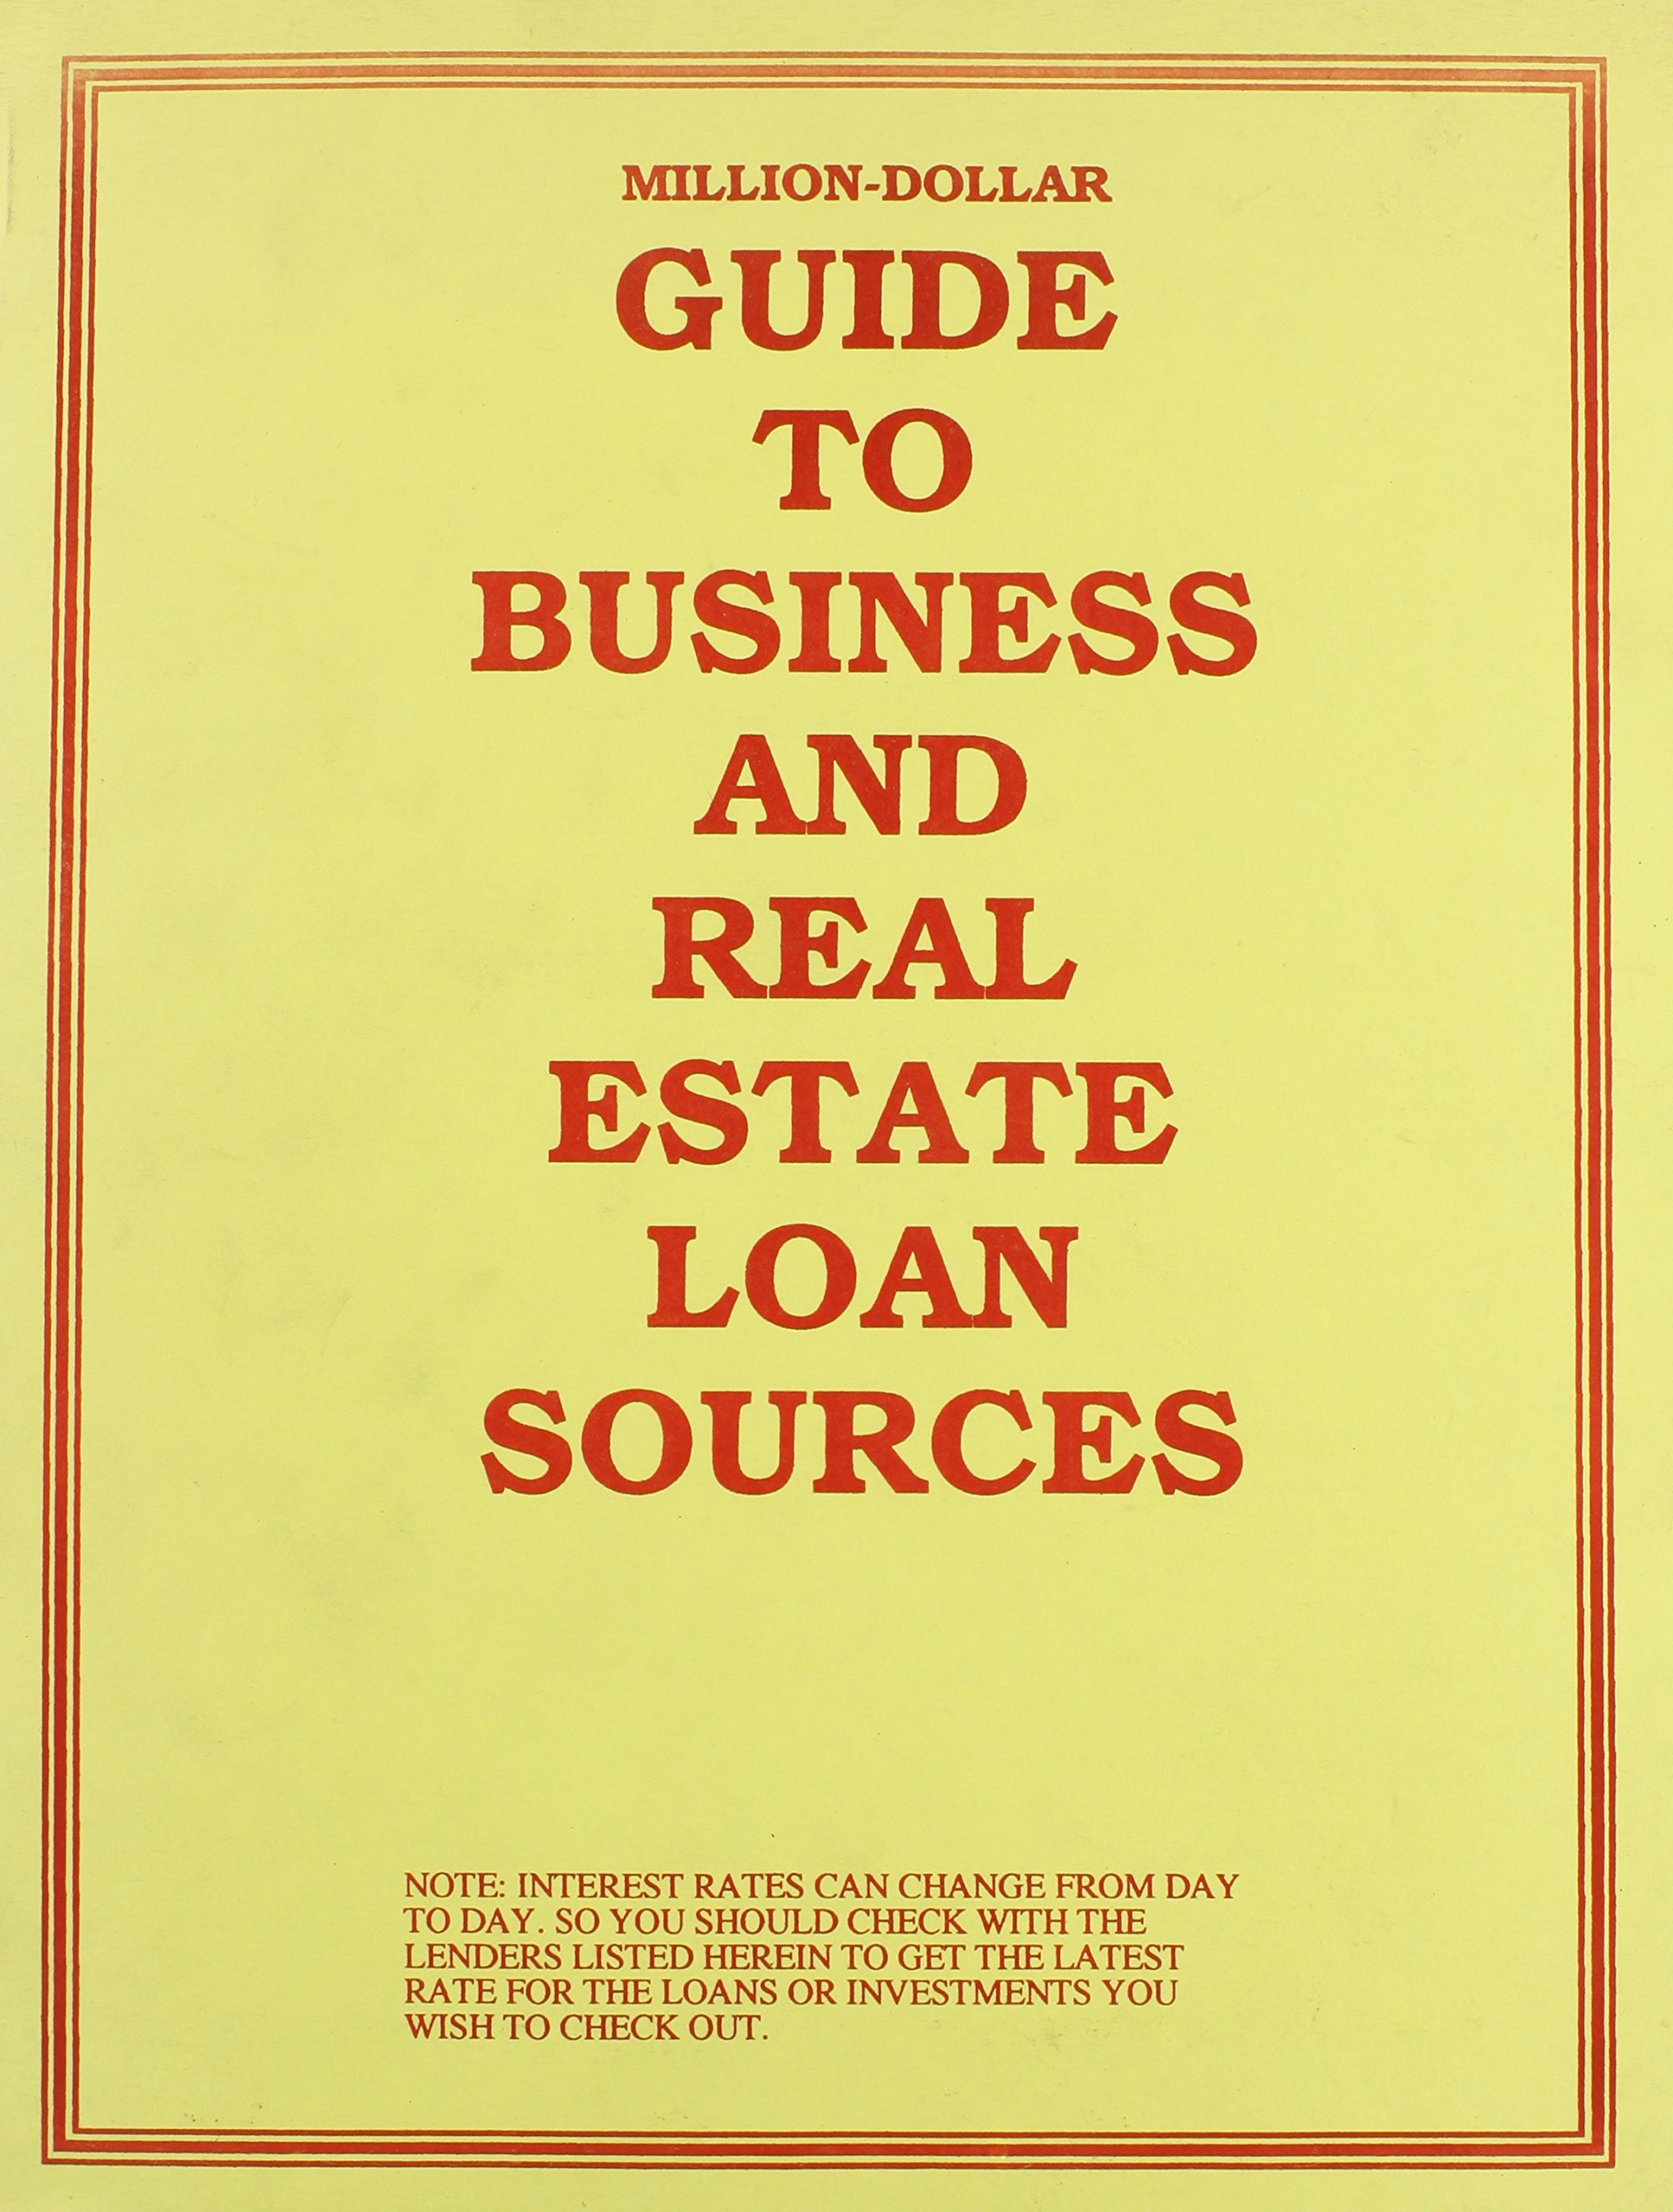 Buy Million Dollar Guide To Business And Real Estate Loan Sources Book Online At Low Prices In India Million Dollar Guide To Business And Real Estate Loan Sources Reviews Ratings Amazon In